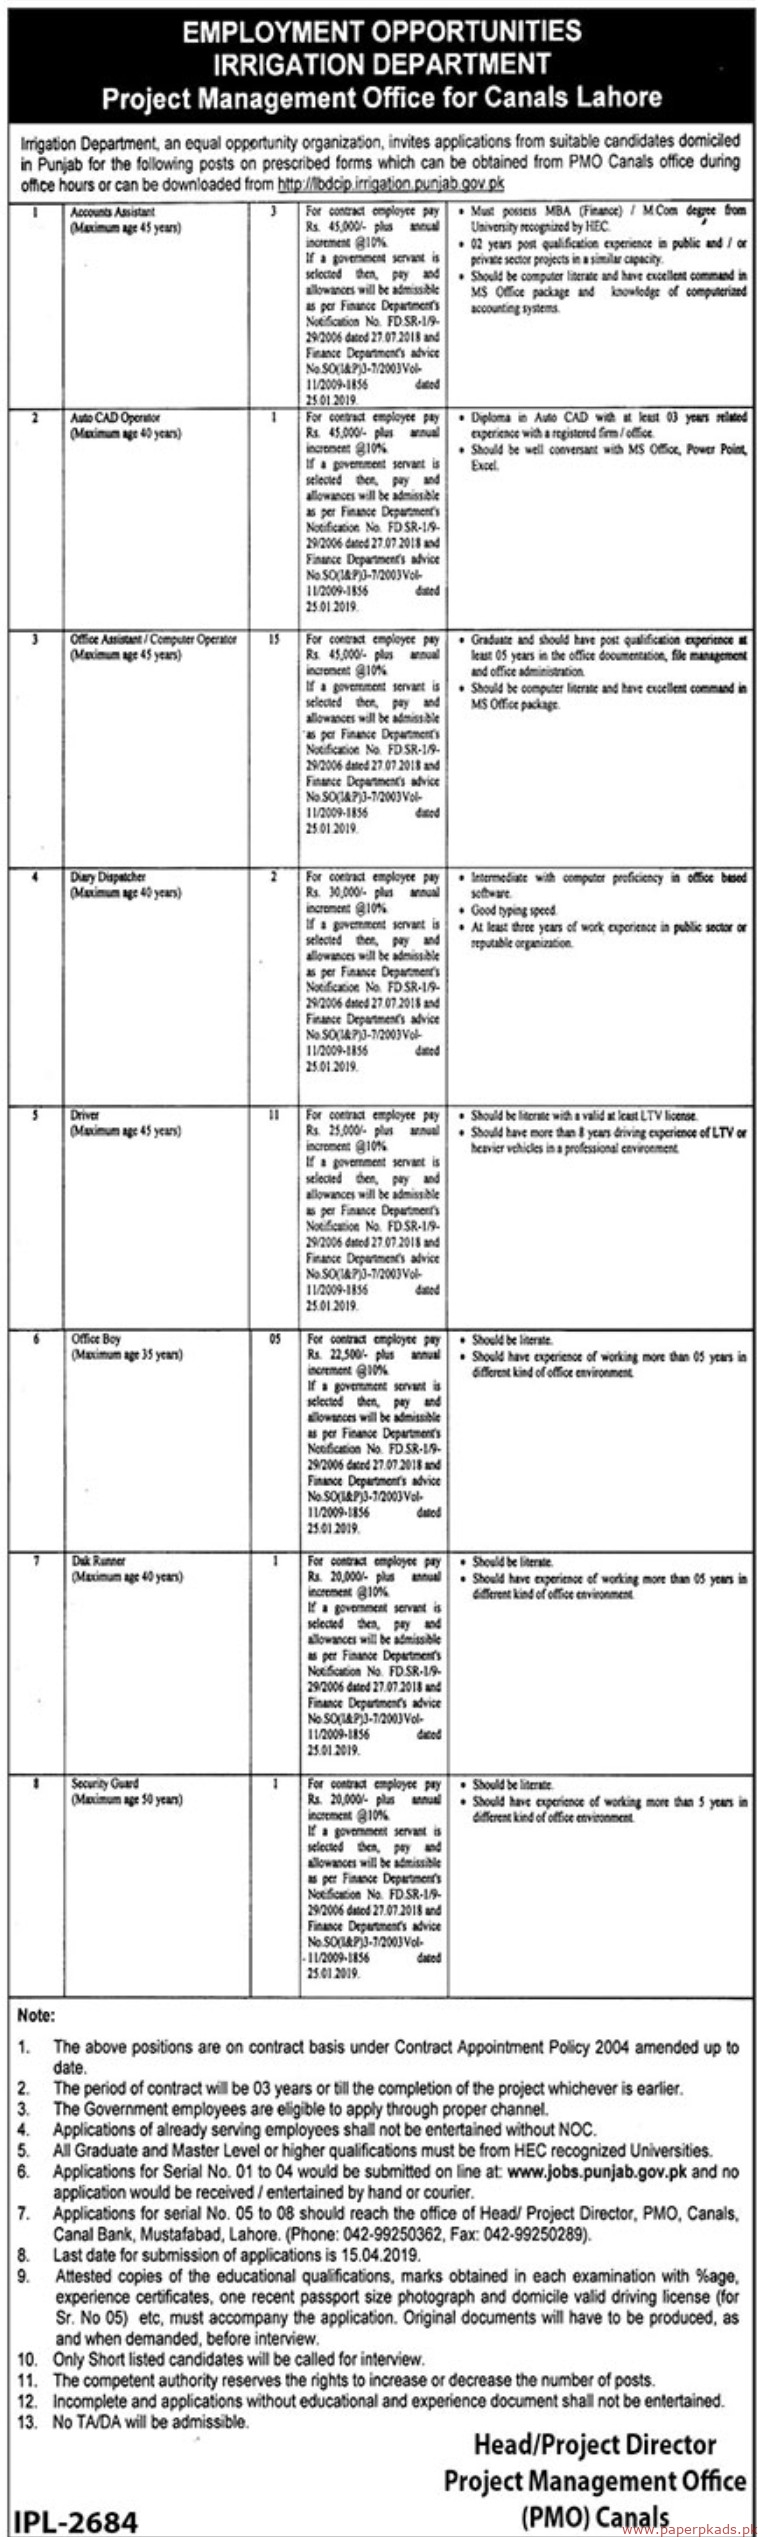 Irrigation Department Project Management Office Jobs 2019 Latest